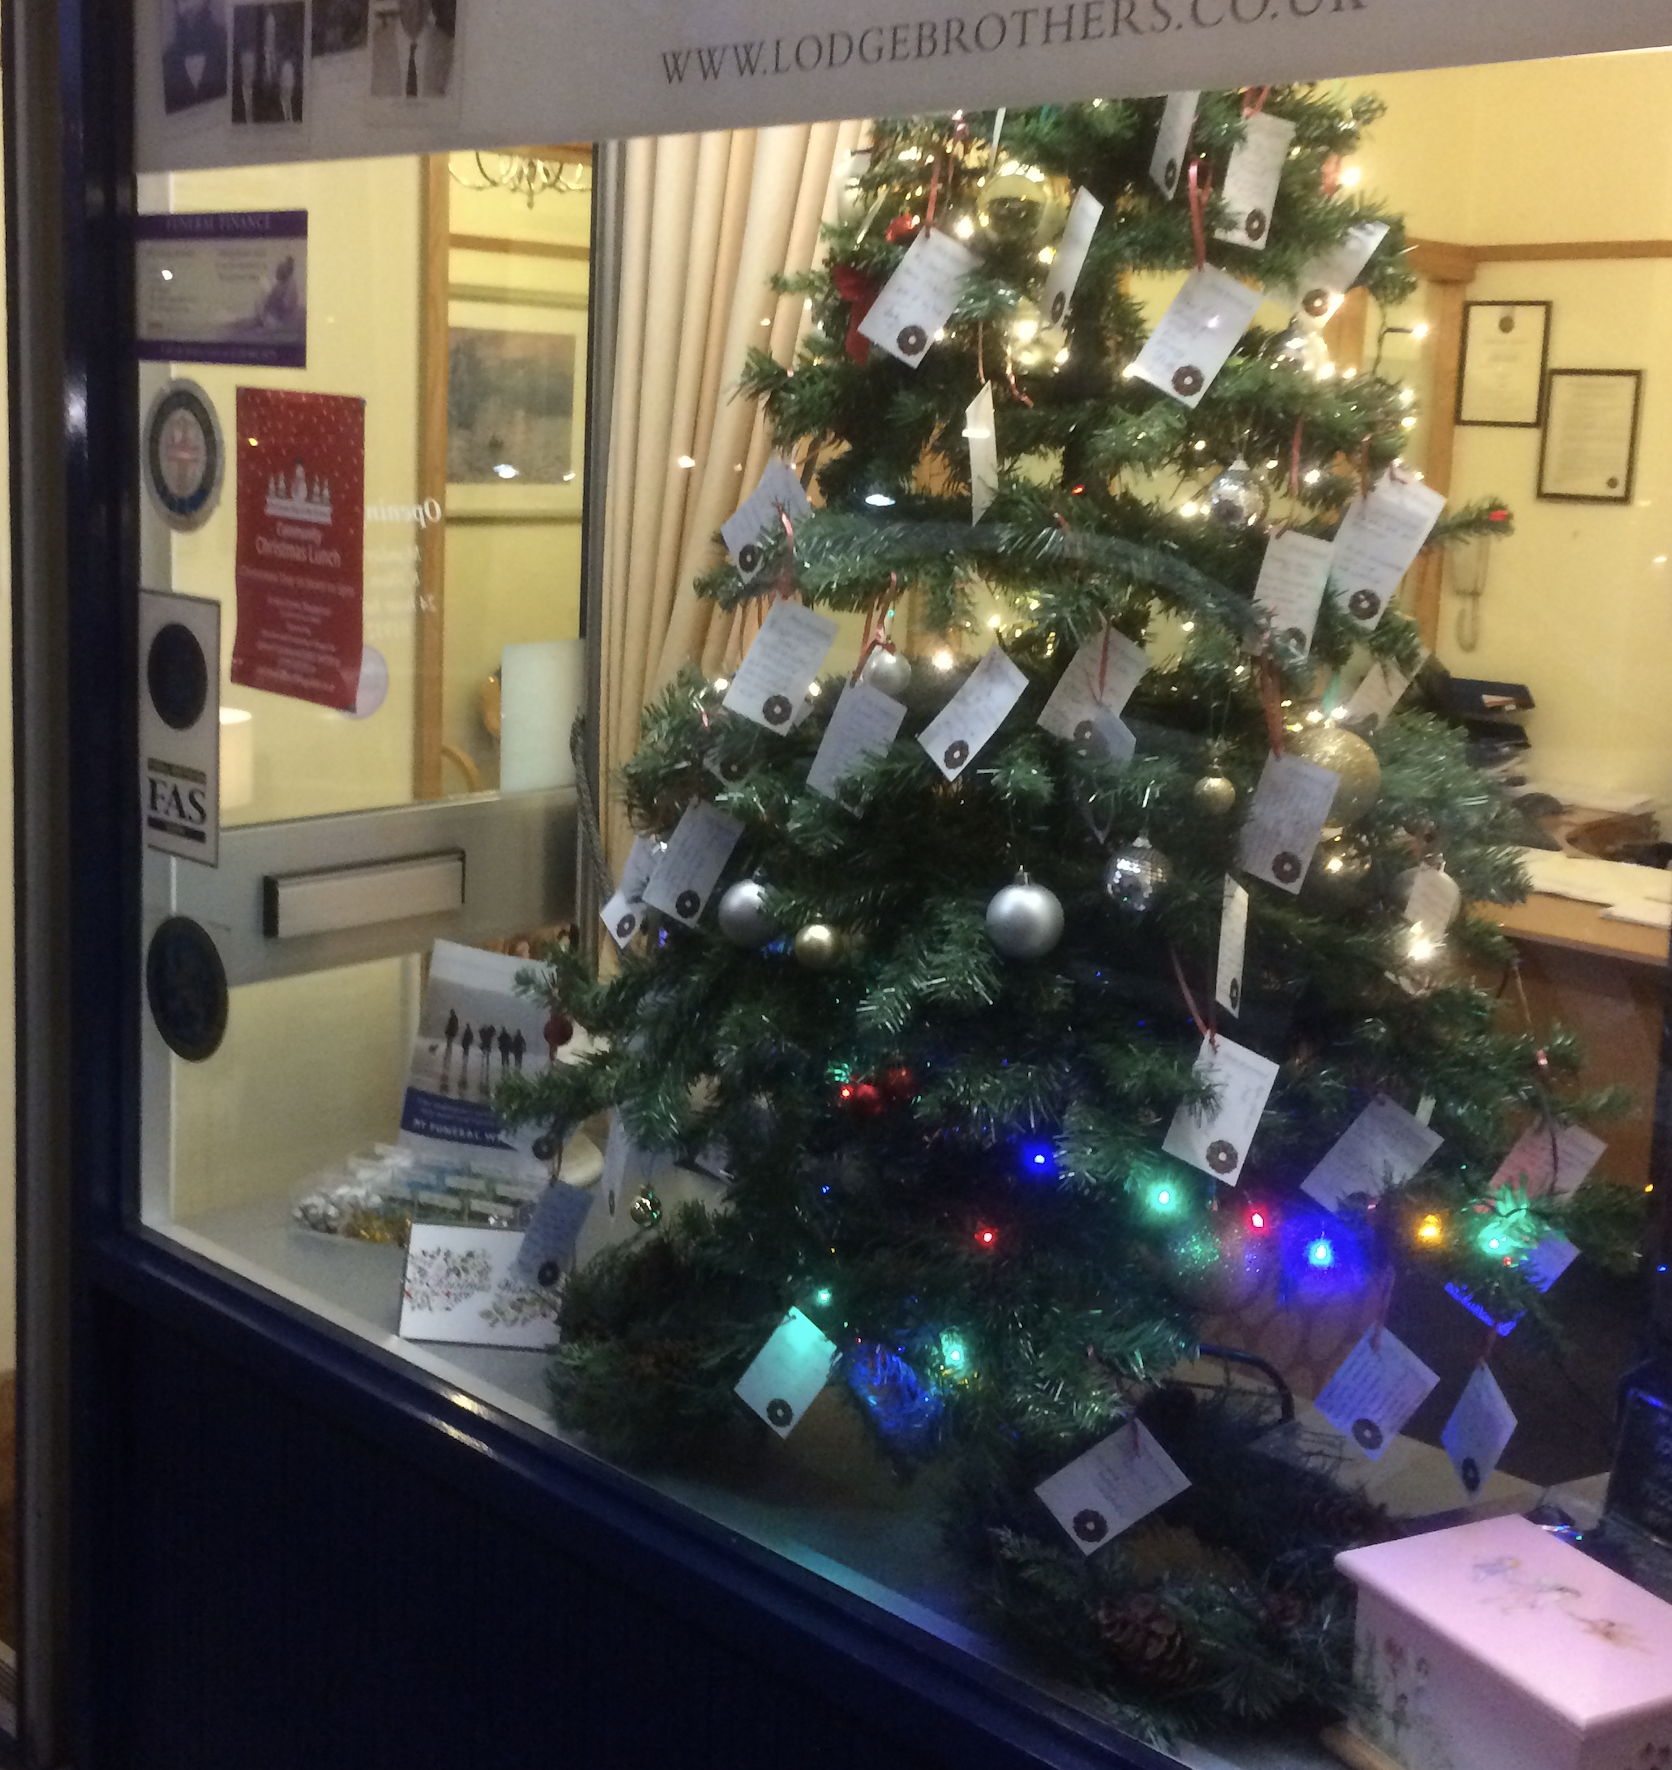 Christmas Remembrance Tree at Lodge Brothers Sunbury